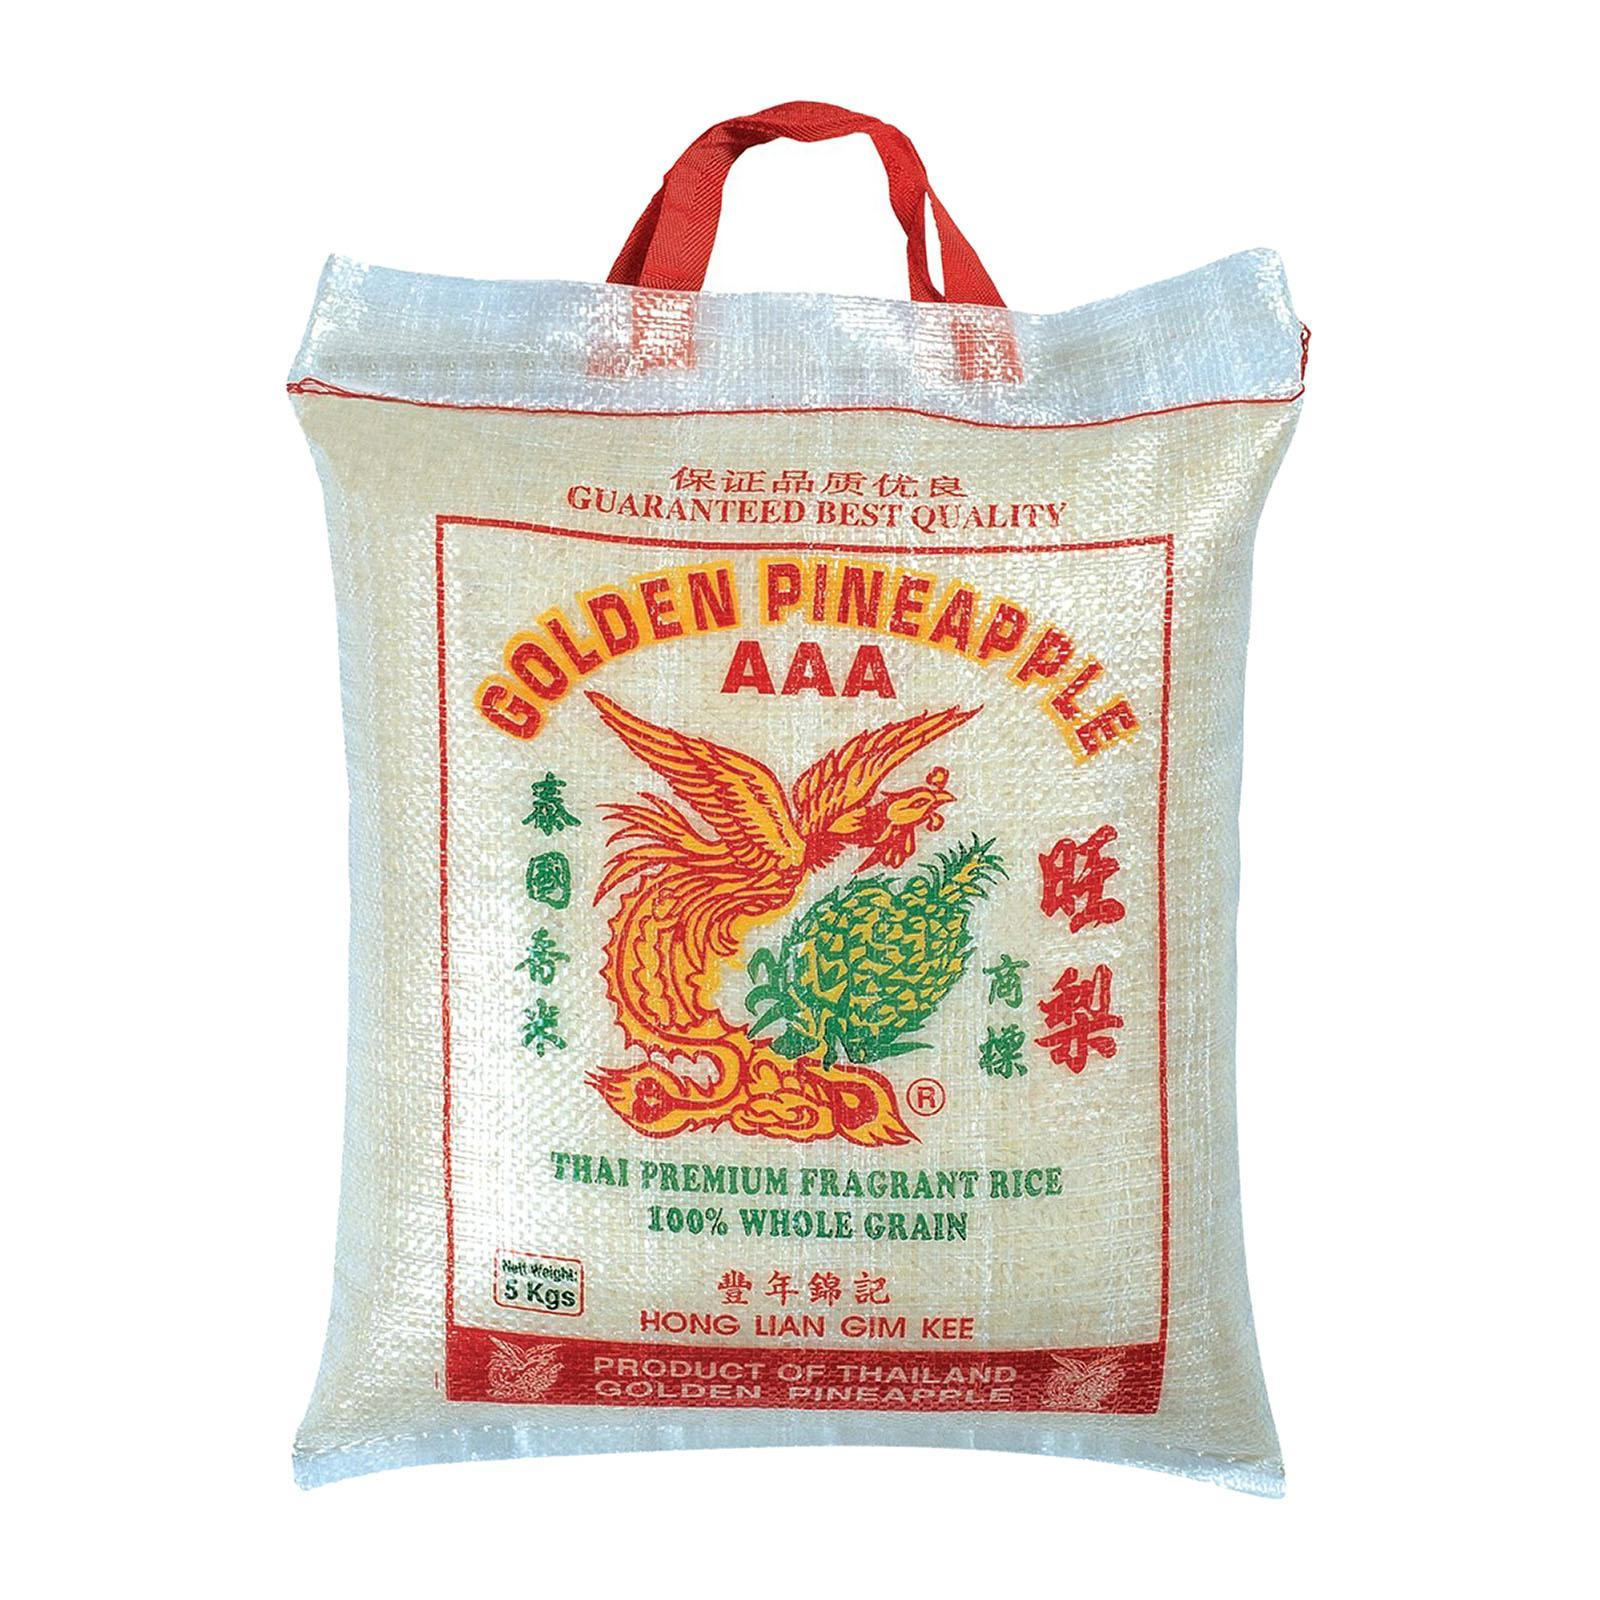 Golden Pineapple Aaa Thai Premium Fragrant Rice By Redmart.